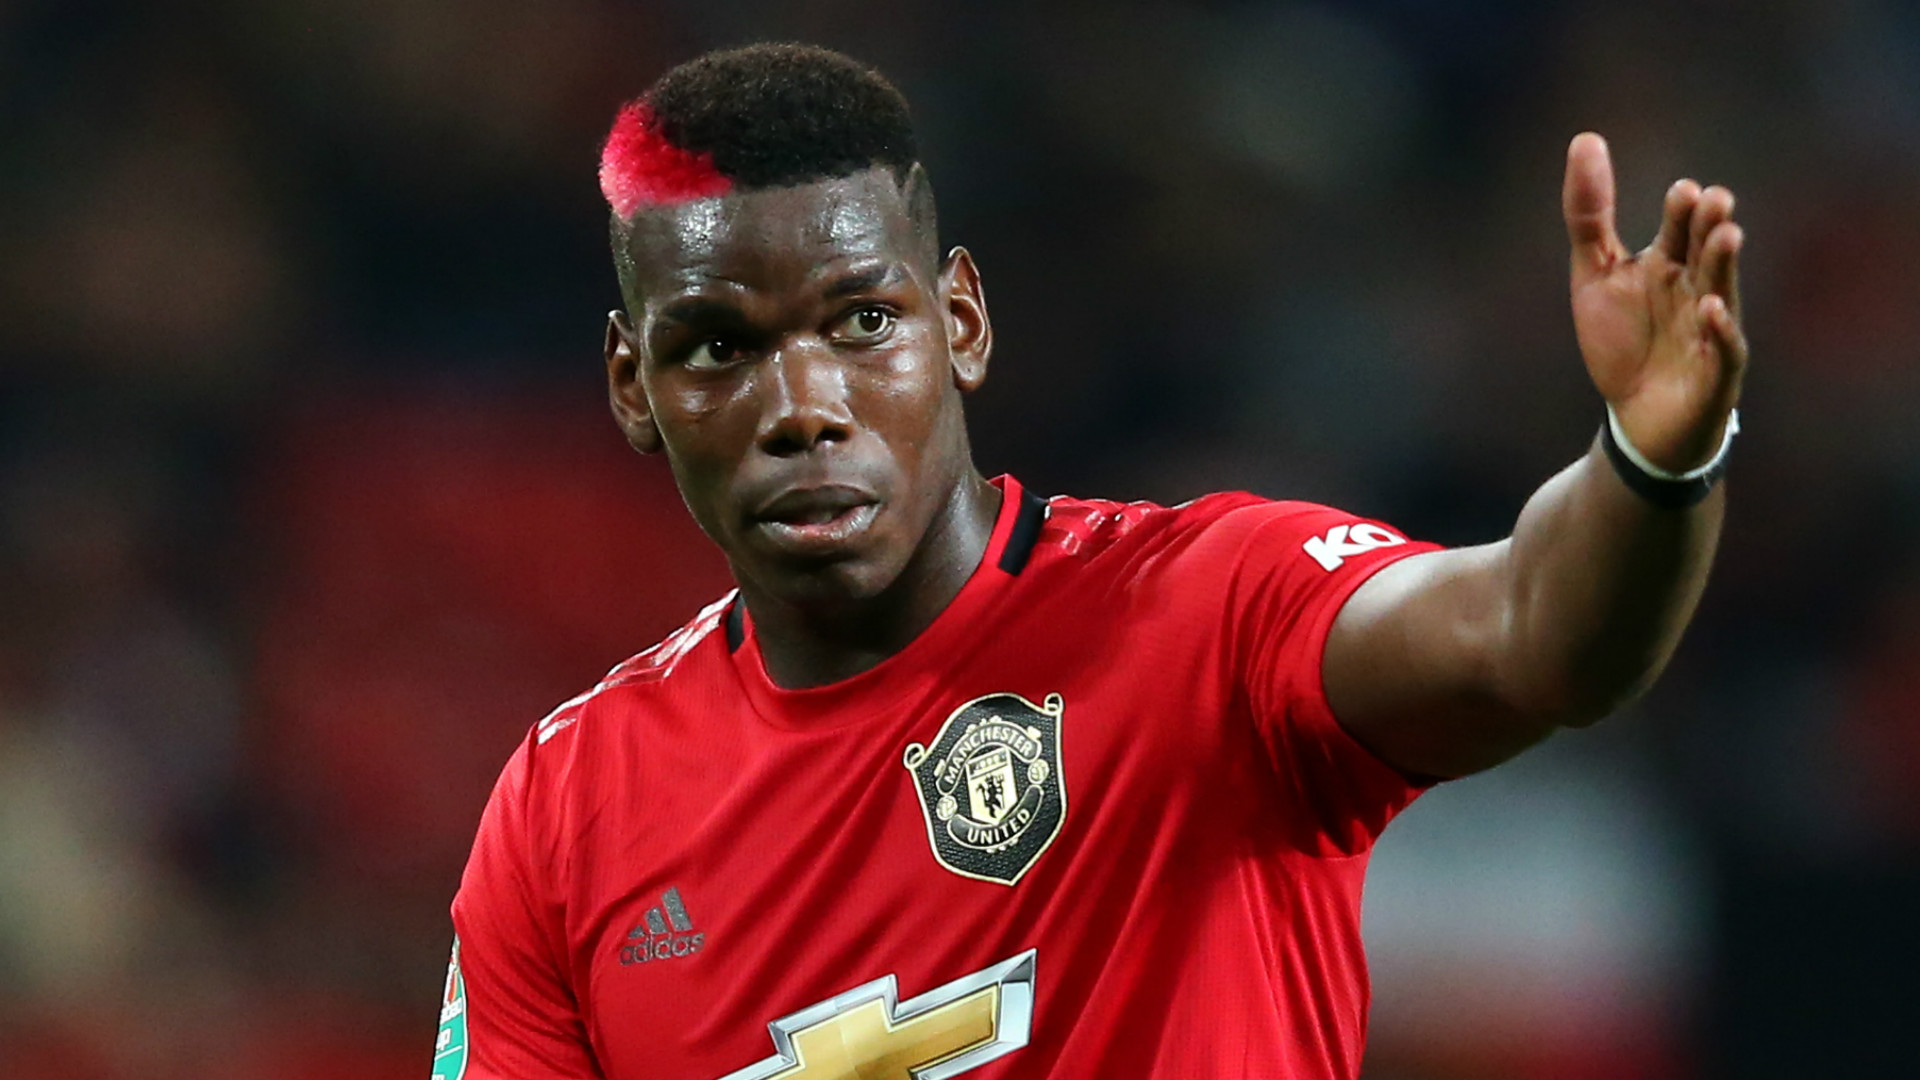 'Pogba has received a lot of unjustified criticism' - Man Utd superstar doesn't deserve negative press, says Darmian